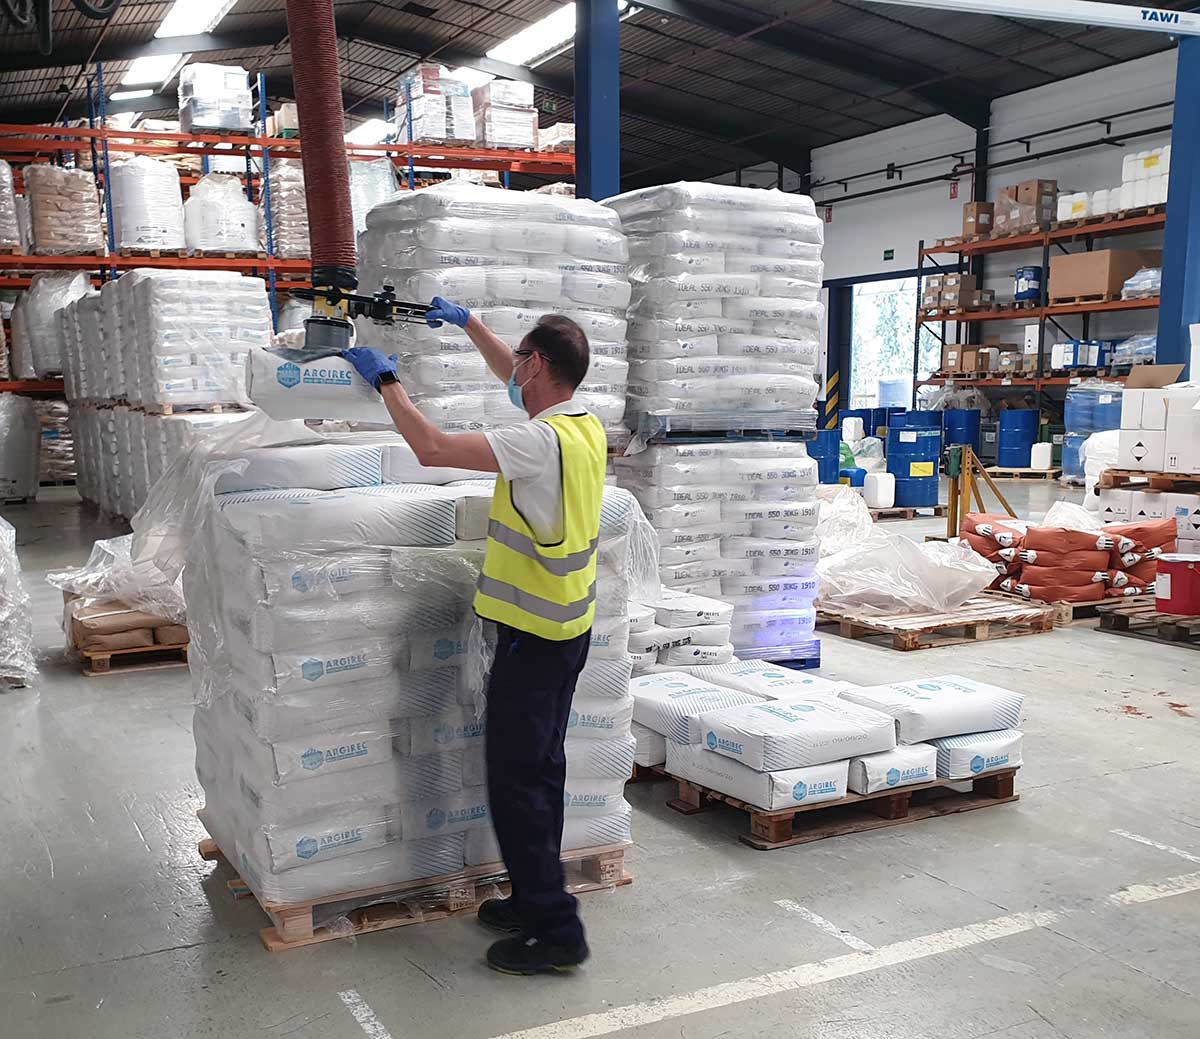 Lifting sacks from pallet using handheld vacuum lifter